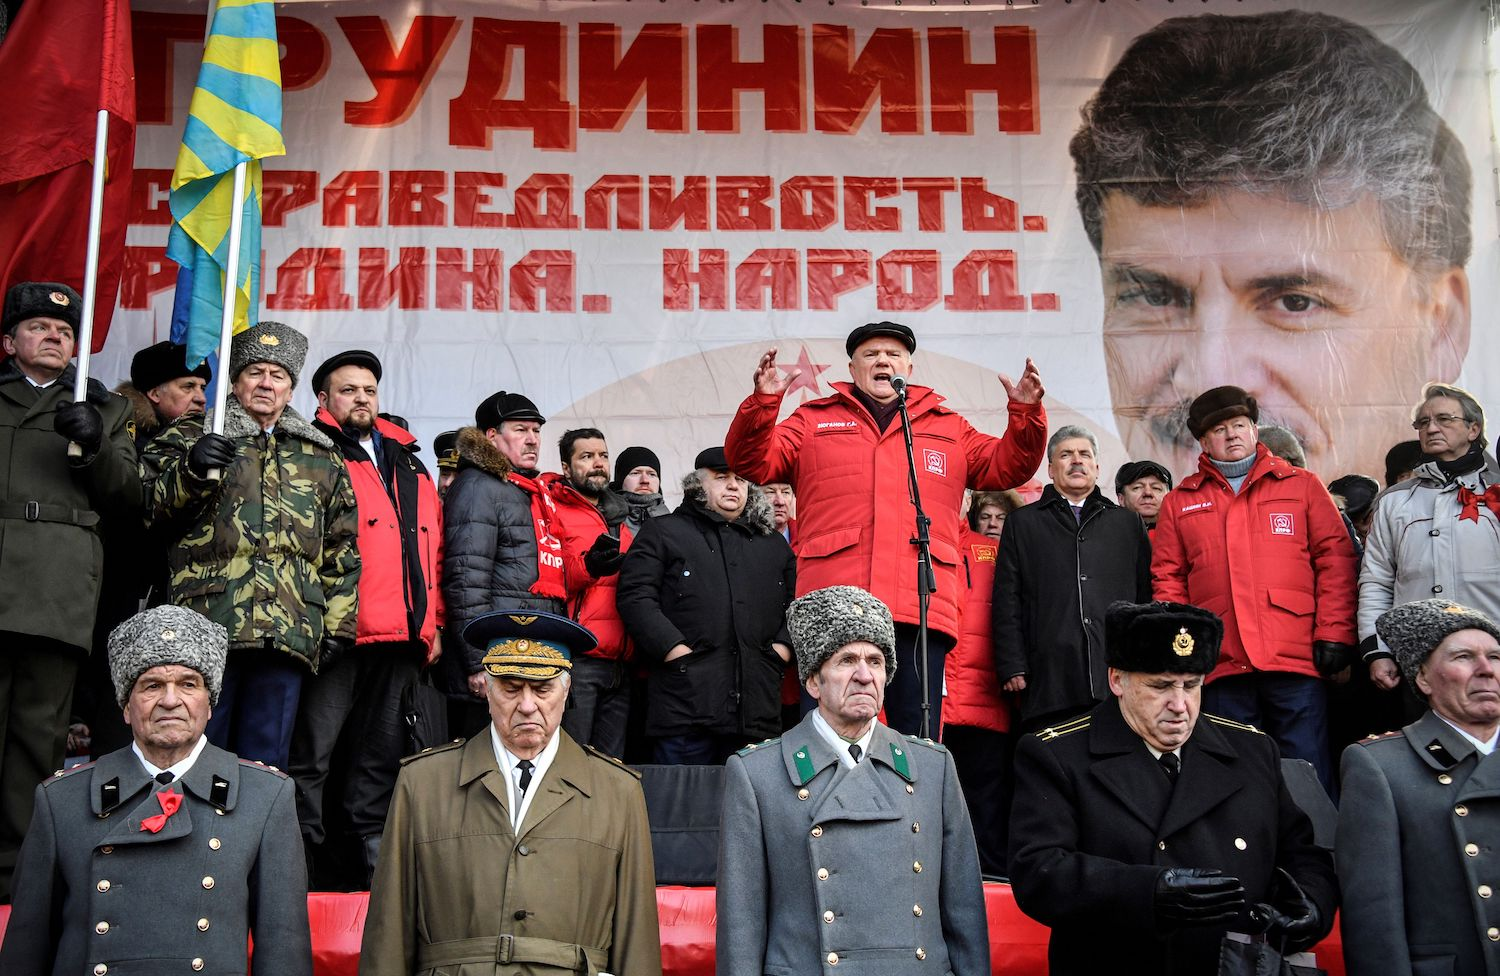 Veteran leader of Russian Communist party Gennady Zyuganov (center) speaks in front of a banner depicting Communist presidential candidate Pavel Grudinin during a rally in downtown Moscow on Feb. 23, marking the Defender of the Fatherland's Day, former Day of the Soviet Army. The Communist Party chose a new face for the March 18, 2018 polls, opting for businessman Pavel Grudinin rather than veteran leader Gennady Zyuganov. / AFP PHOTO / Alexander NEMENOV        (Photo credit should read ALEXANDER NEMENOV/AFP/Getty Images)